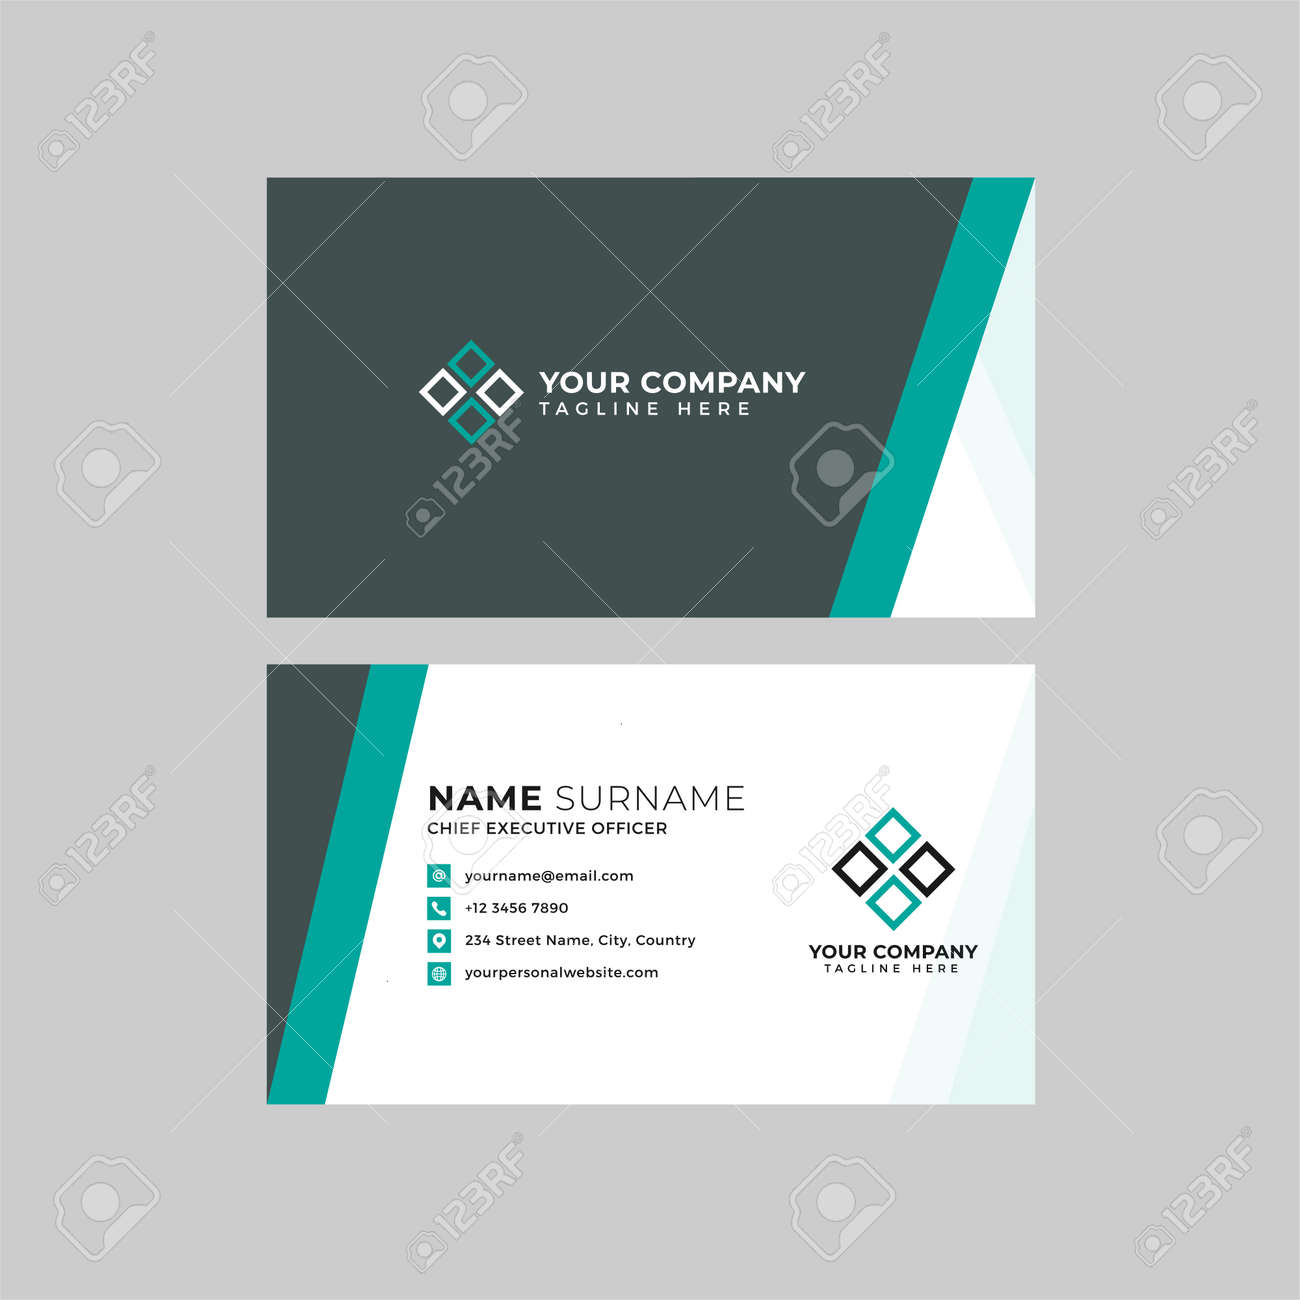 Professional two sided business card vector template with logo place holder, name, address, phone number, website and email - 168682834